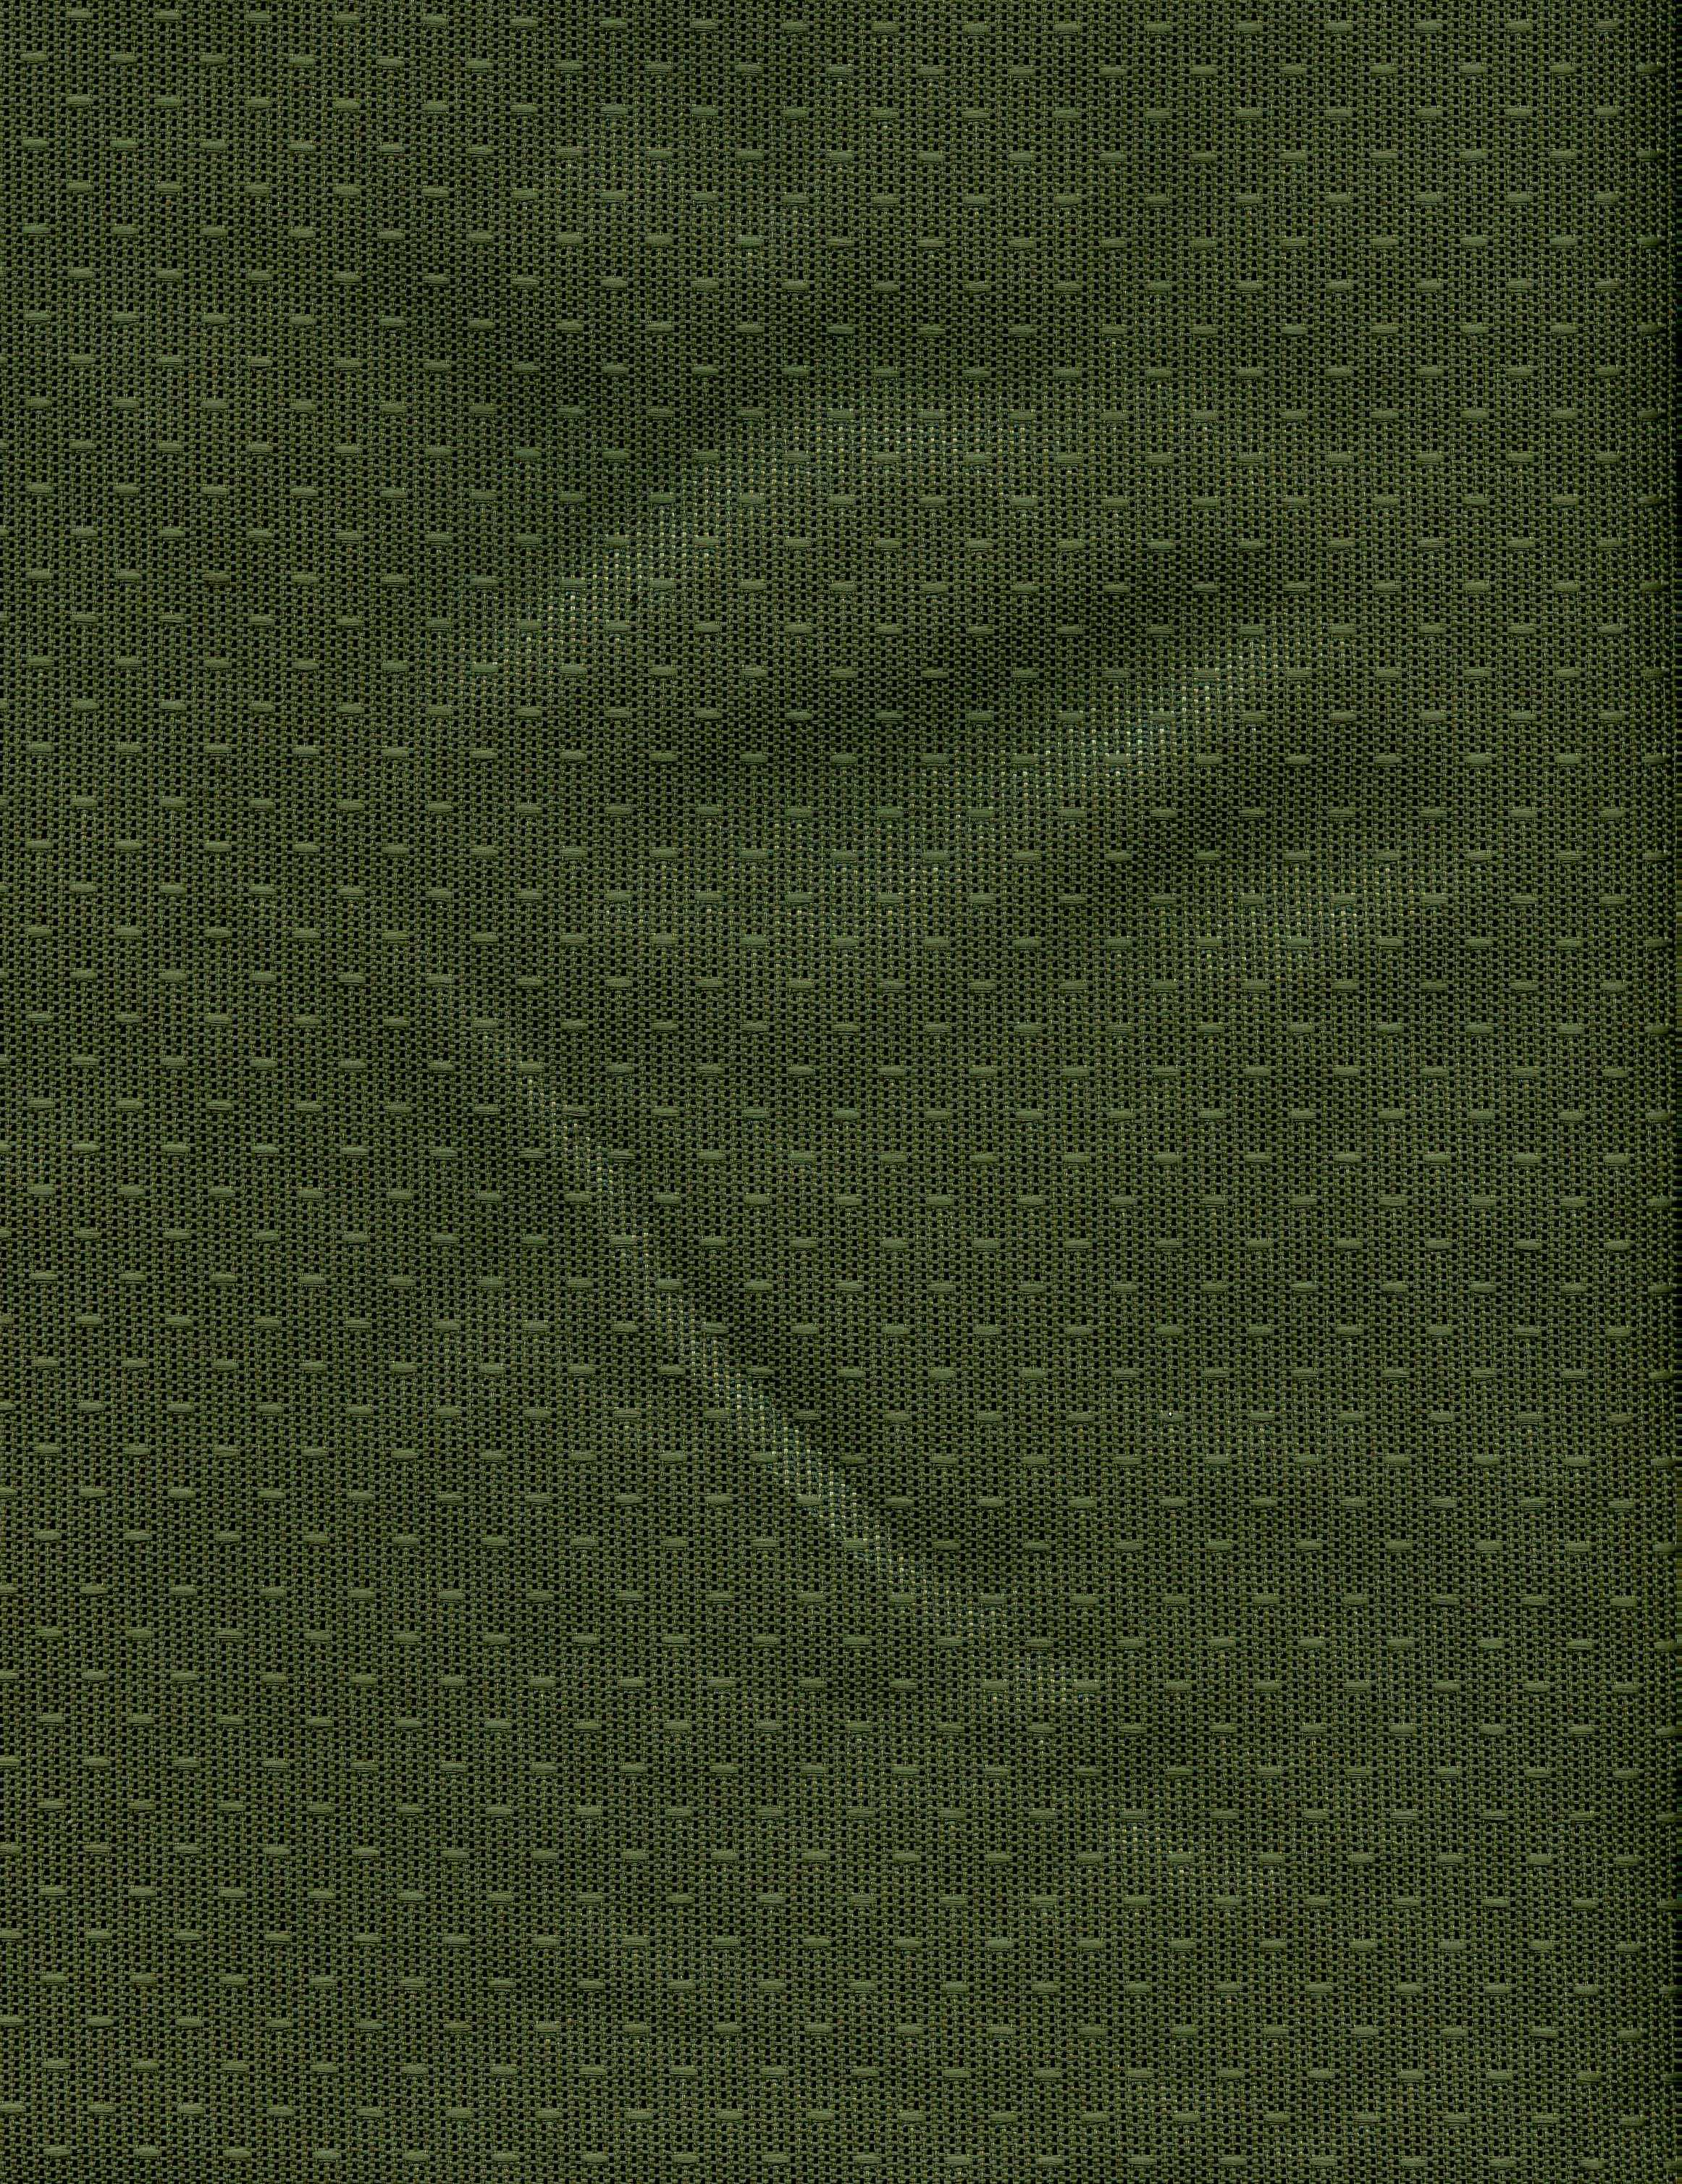 Green Upholstry